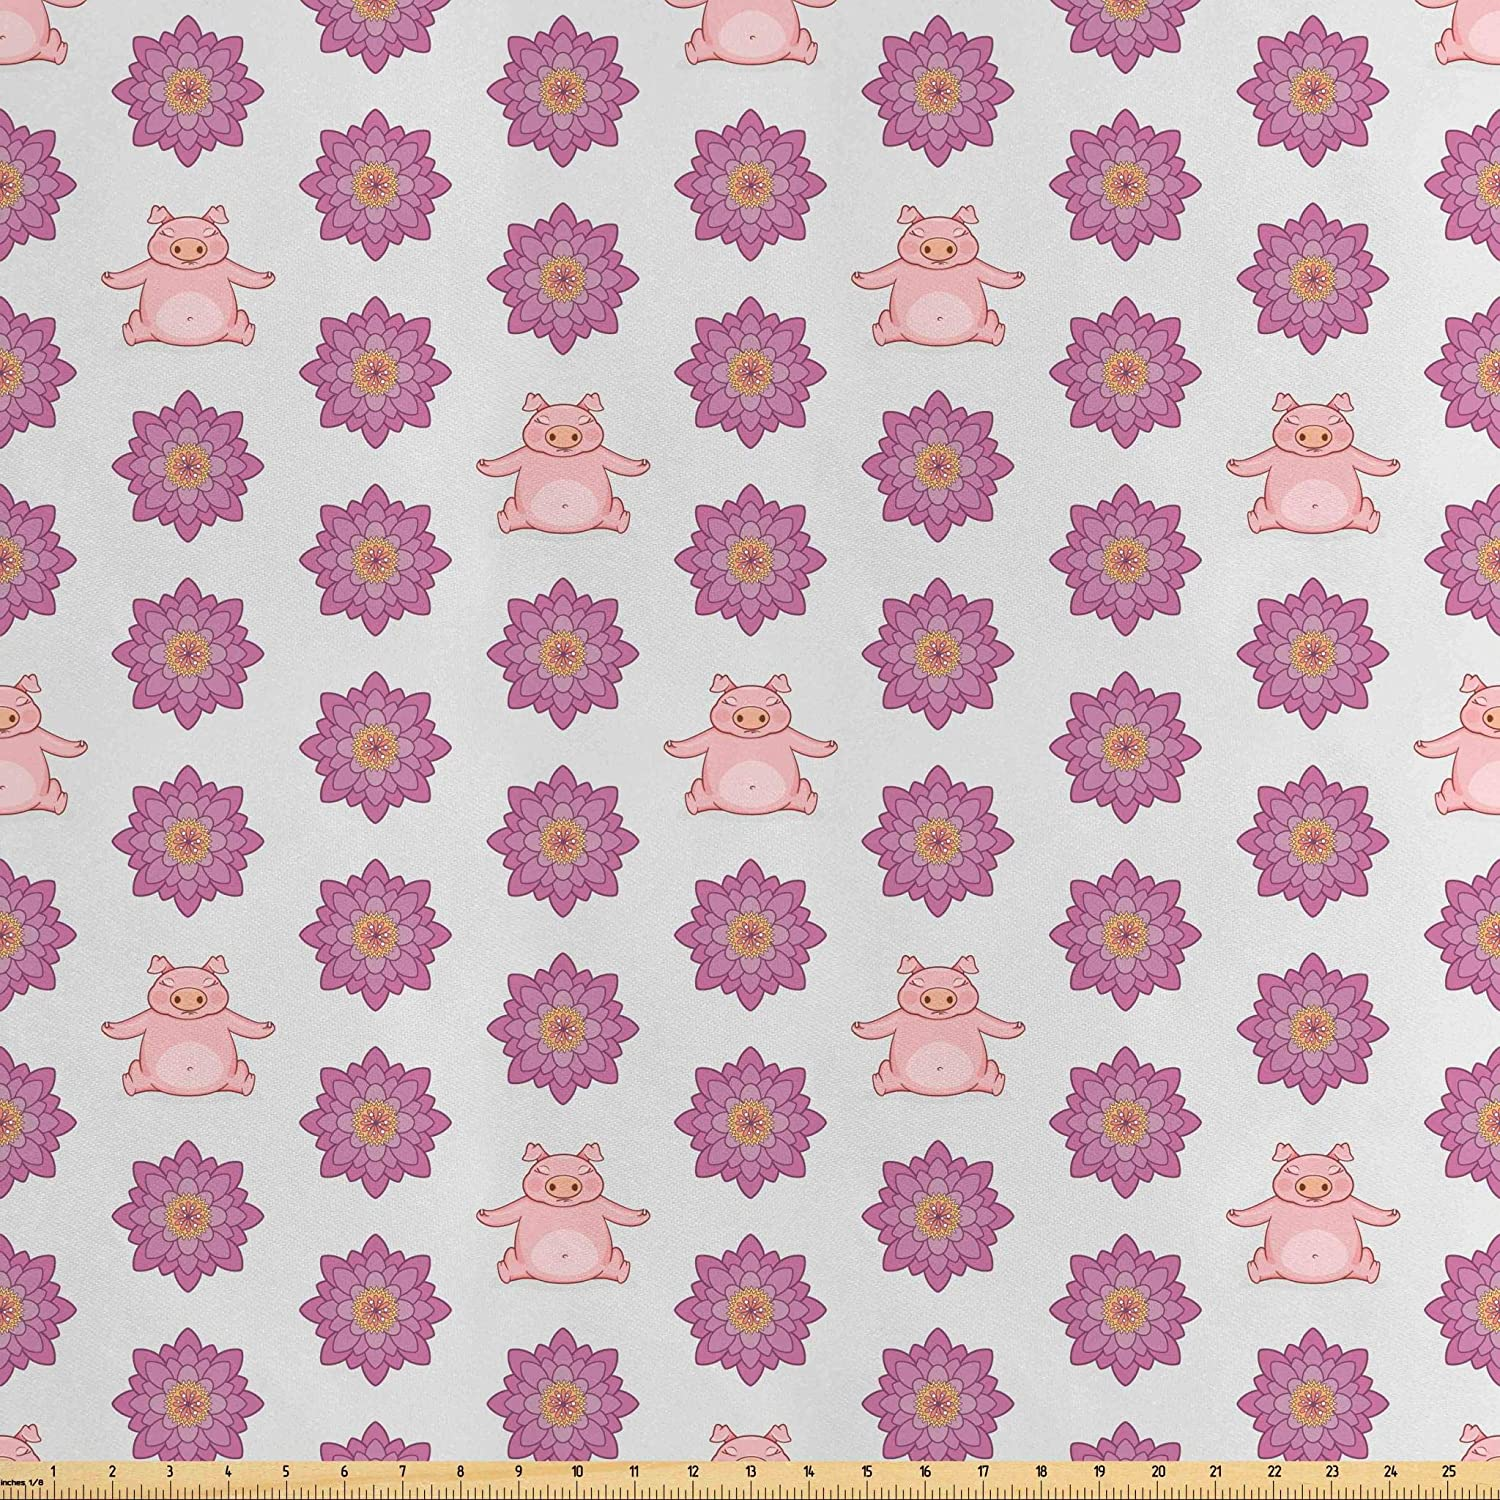 Lunarable Pig Fabric by The Yard, Pig Doing Yoga Meditating with Colorful Lotus Flowers Print, Decorative Satin Fabric for Home Textiles and Crafts, 5 Yards, Baby Blue Baby Pink Purple